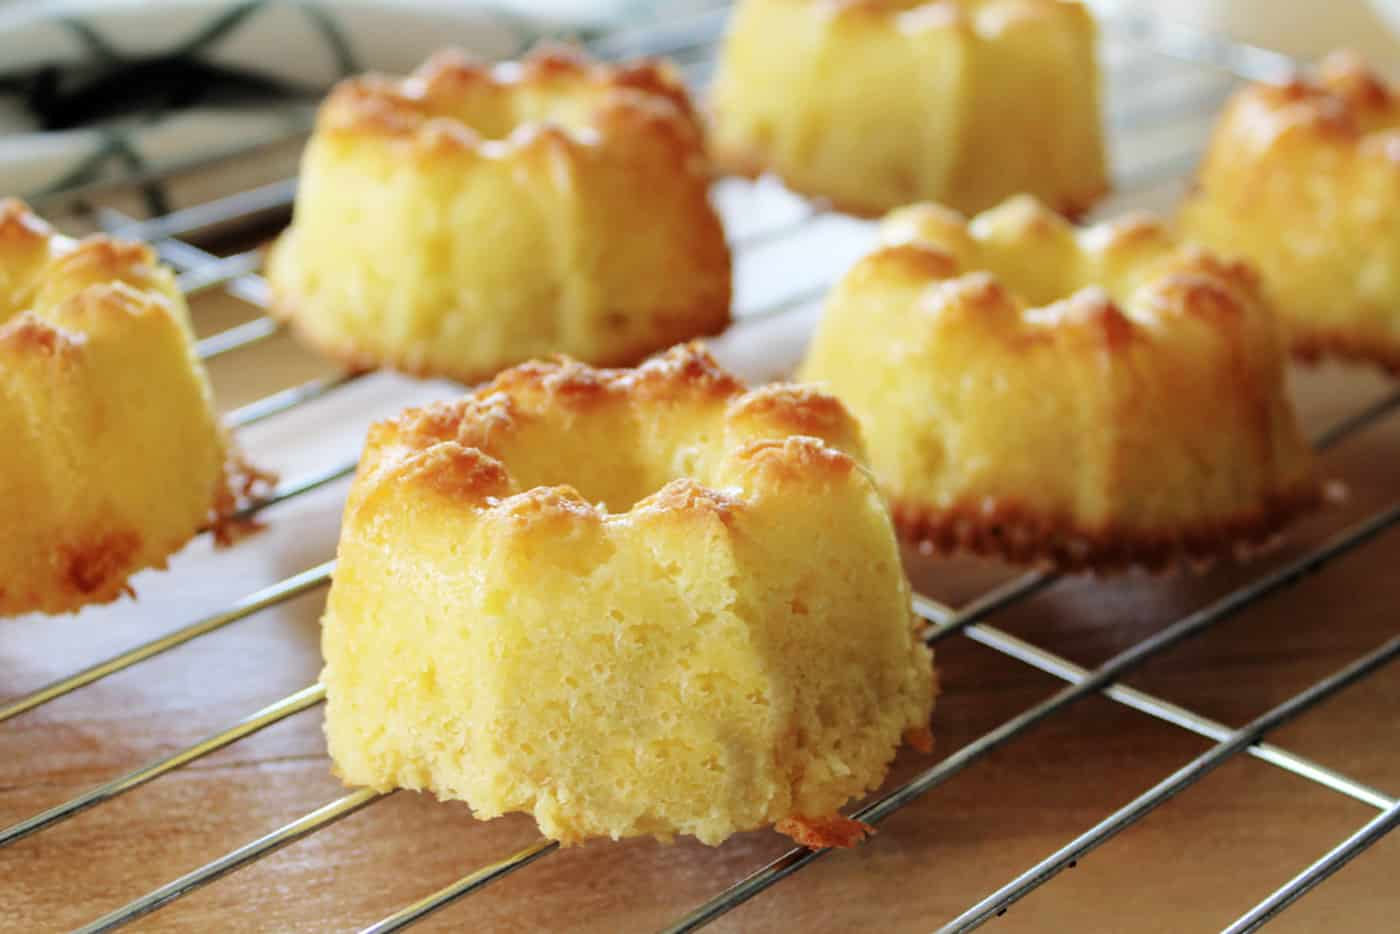 mini bundt cakes cooling on a wore rack